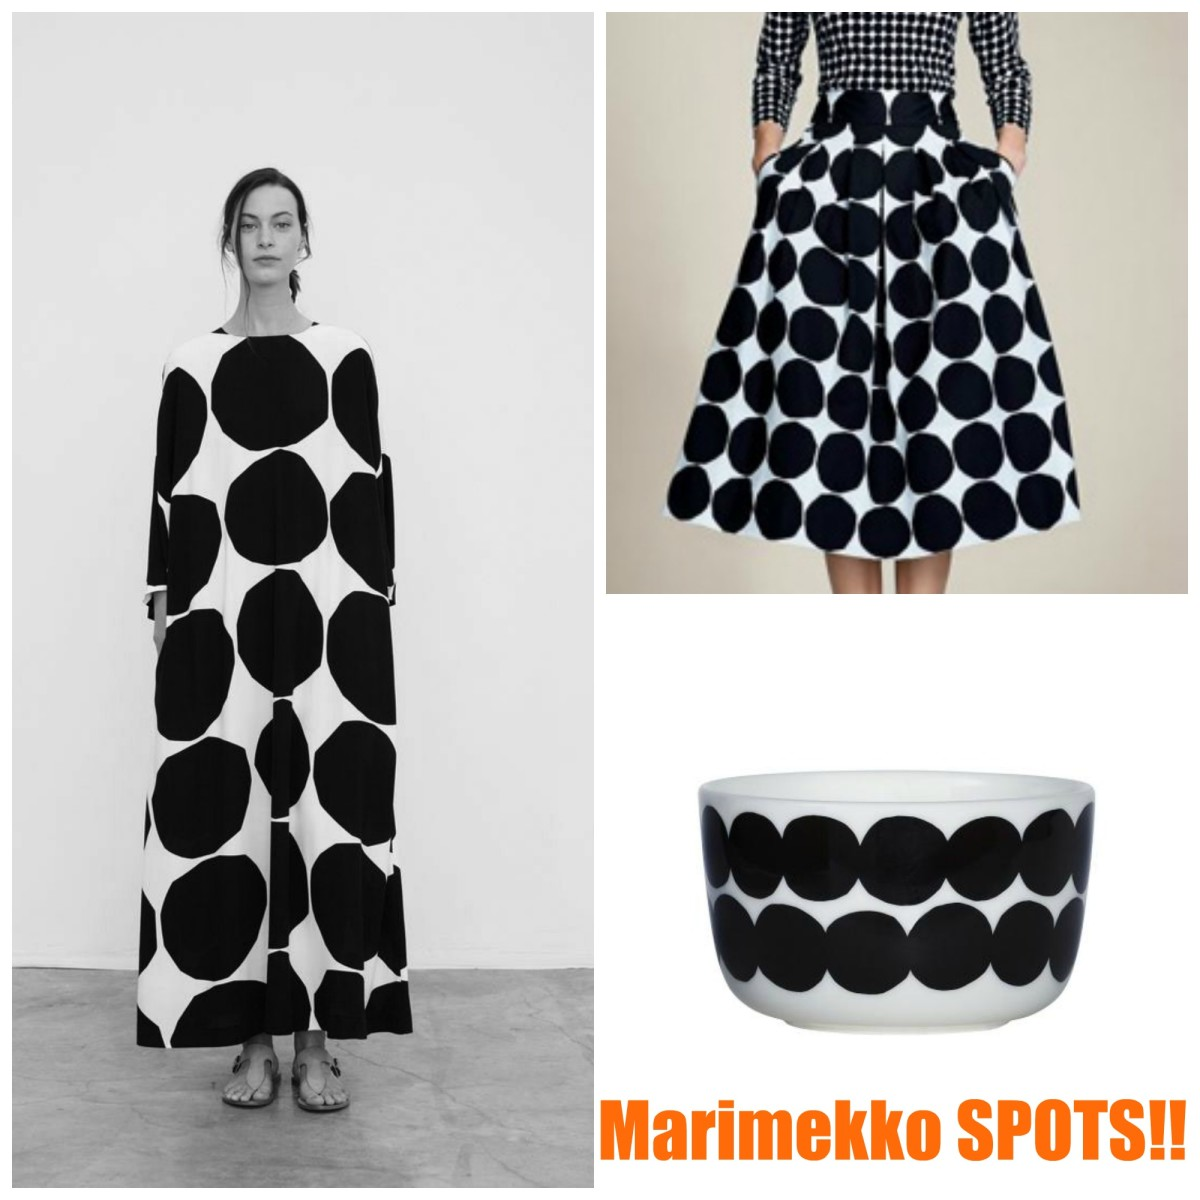 Marimekko takes the spot to haute couture!